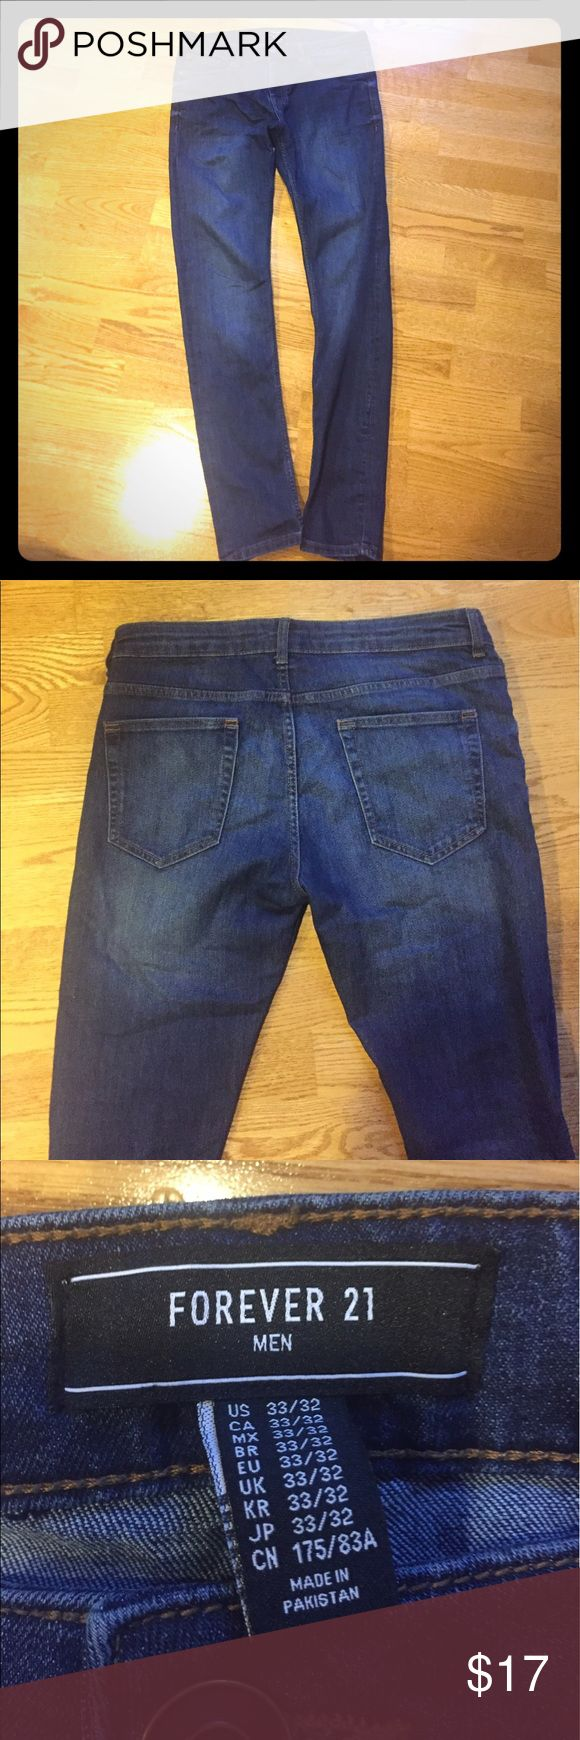 Mens skinny Jeans Forever 21 men's Skinny Jeans size 33/32 perfect condition Forever 21 Jeans Skinny